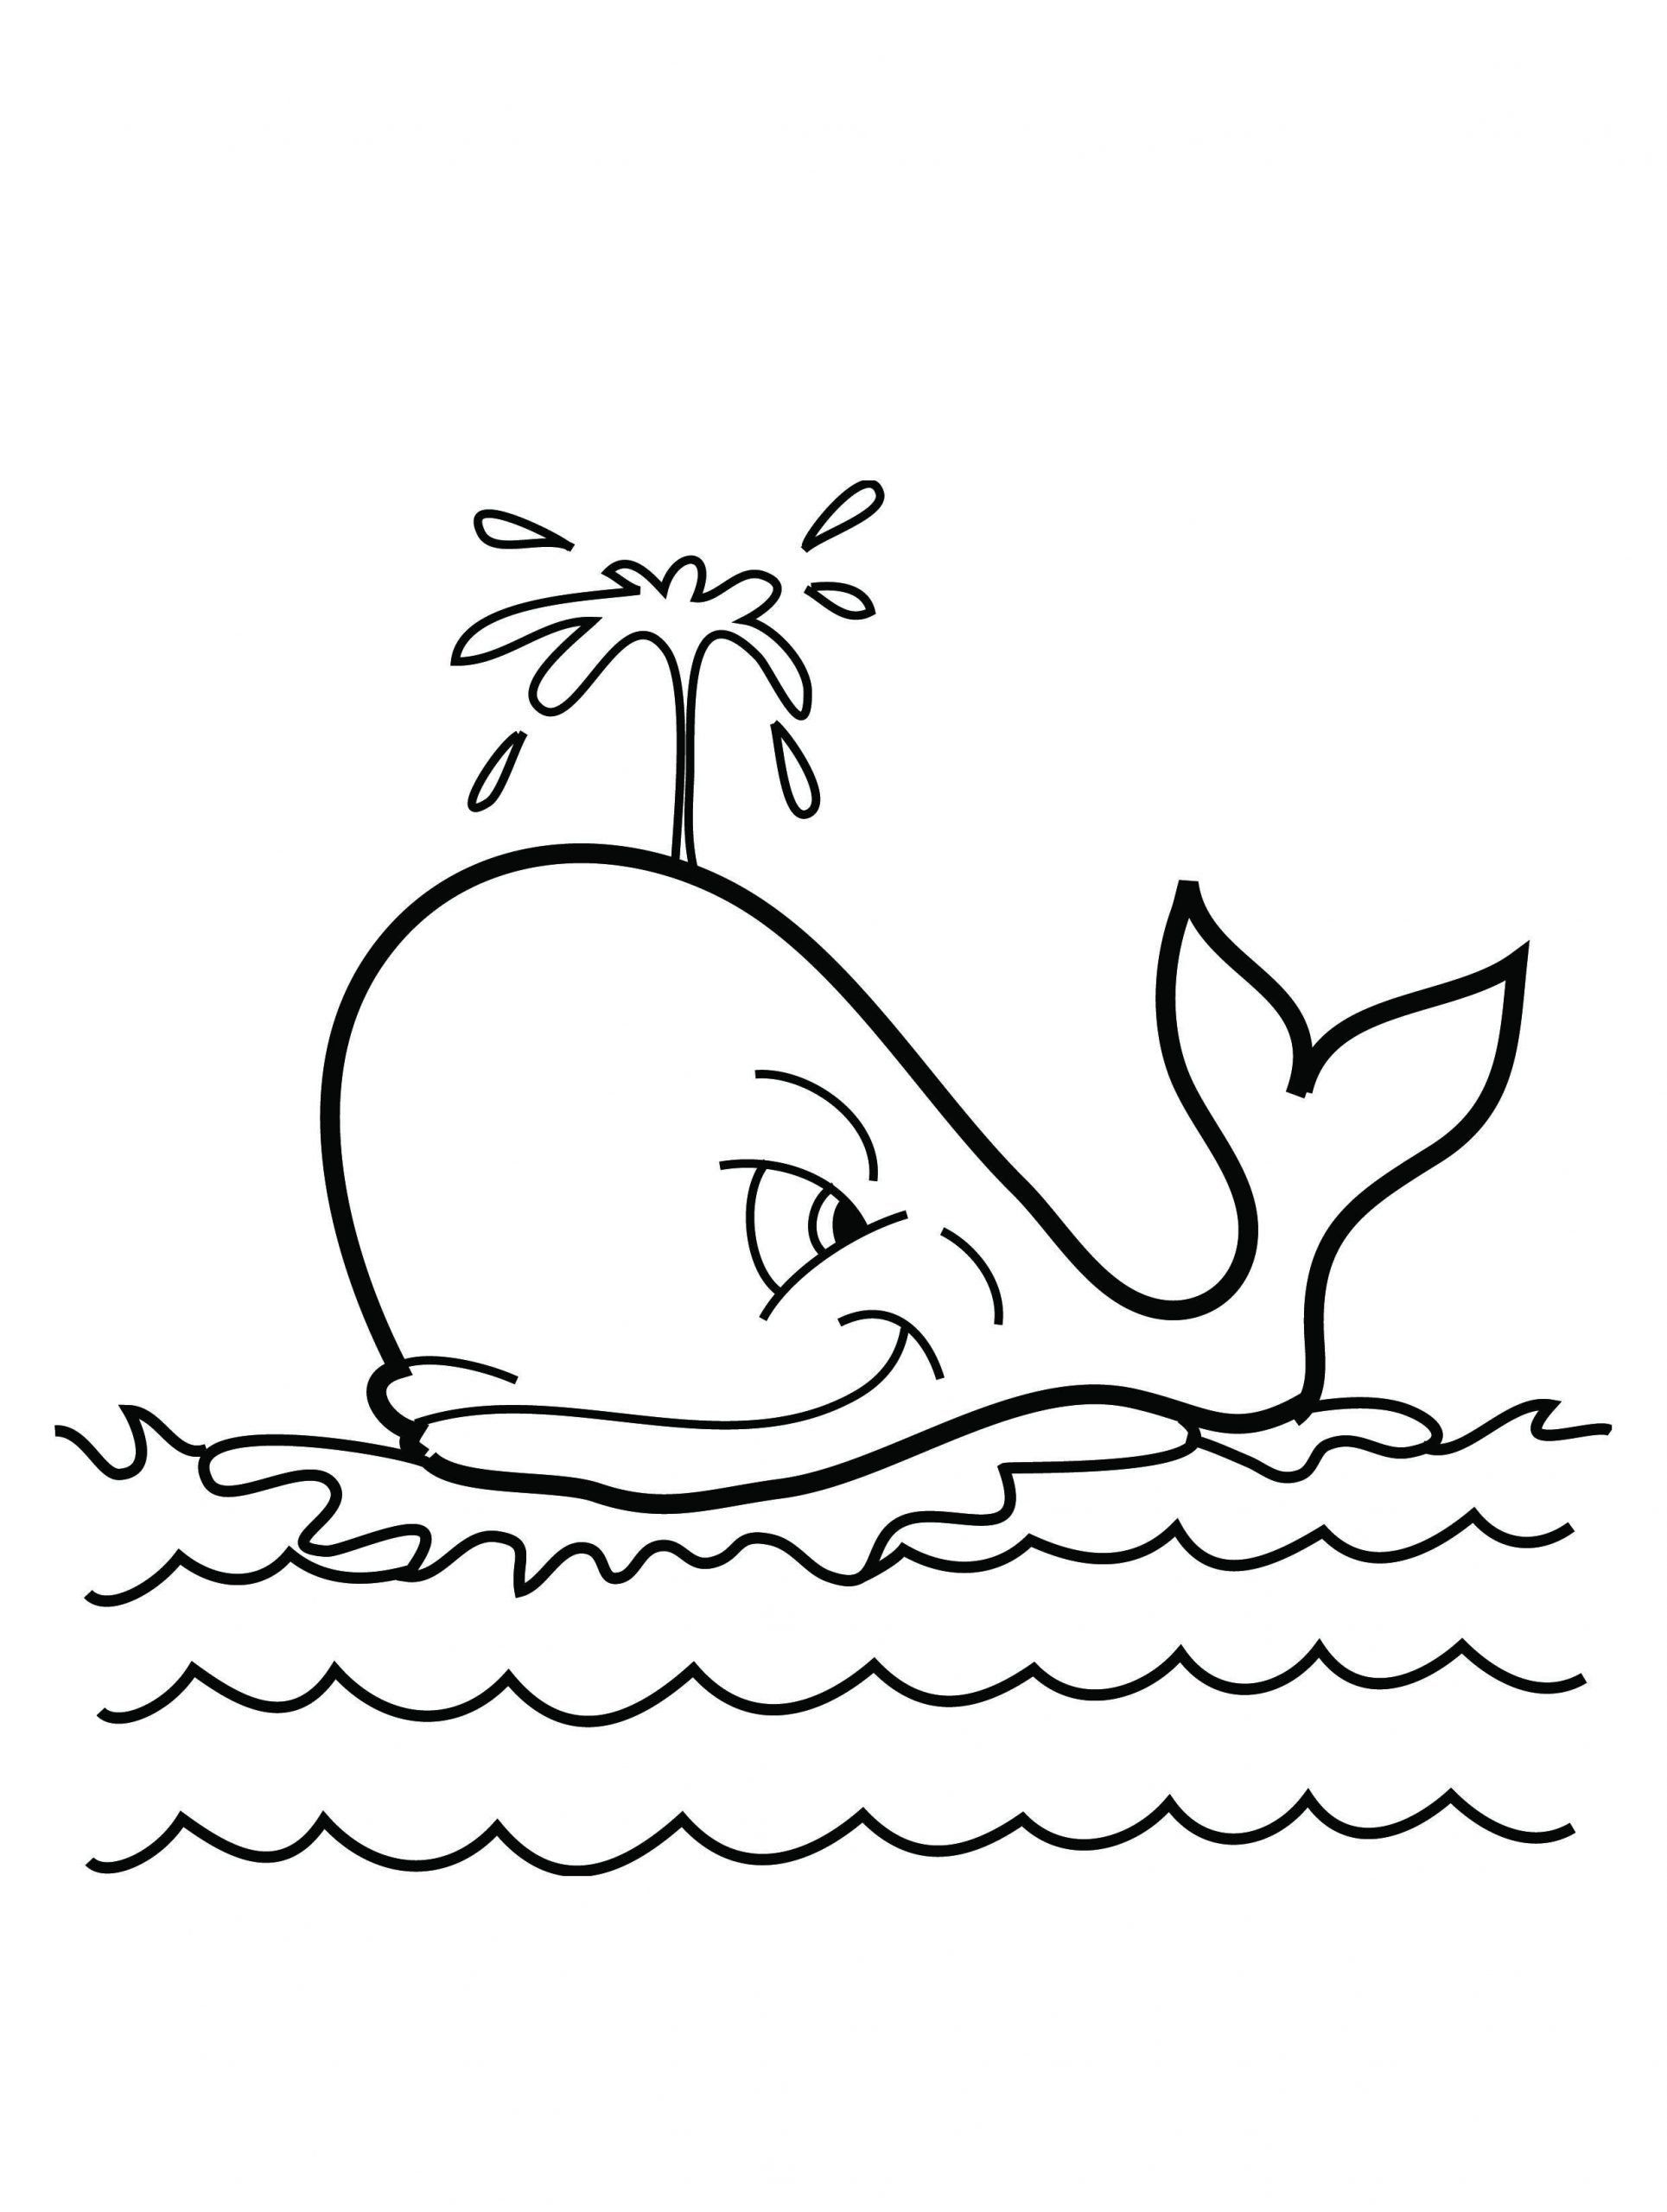 Jonah And The Whale Coloring Page Free Printable Whale Coloring Pages For Kids Whale Coloring Pages Shark Coloring Pages Fish Coloring Page